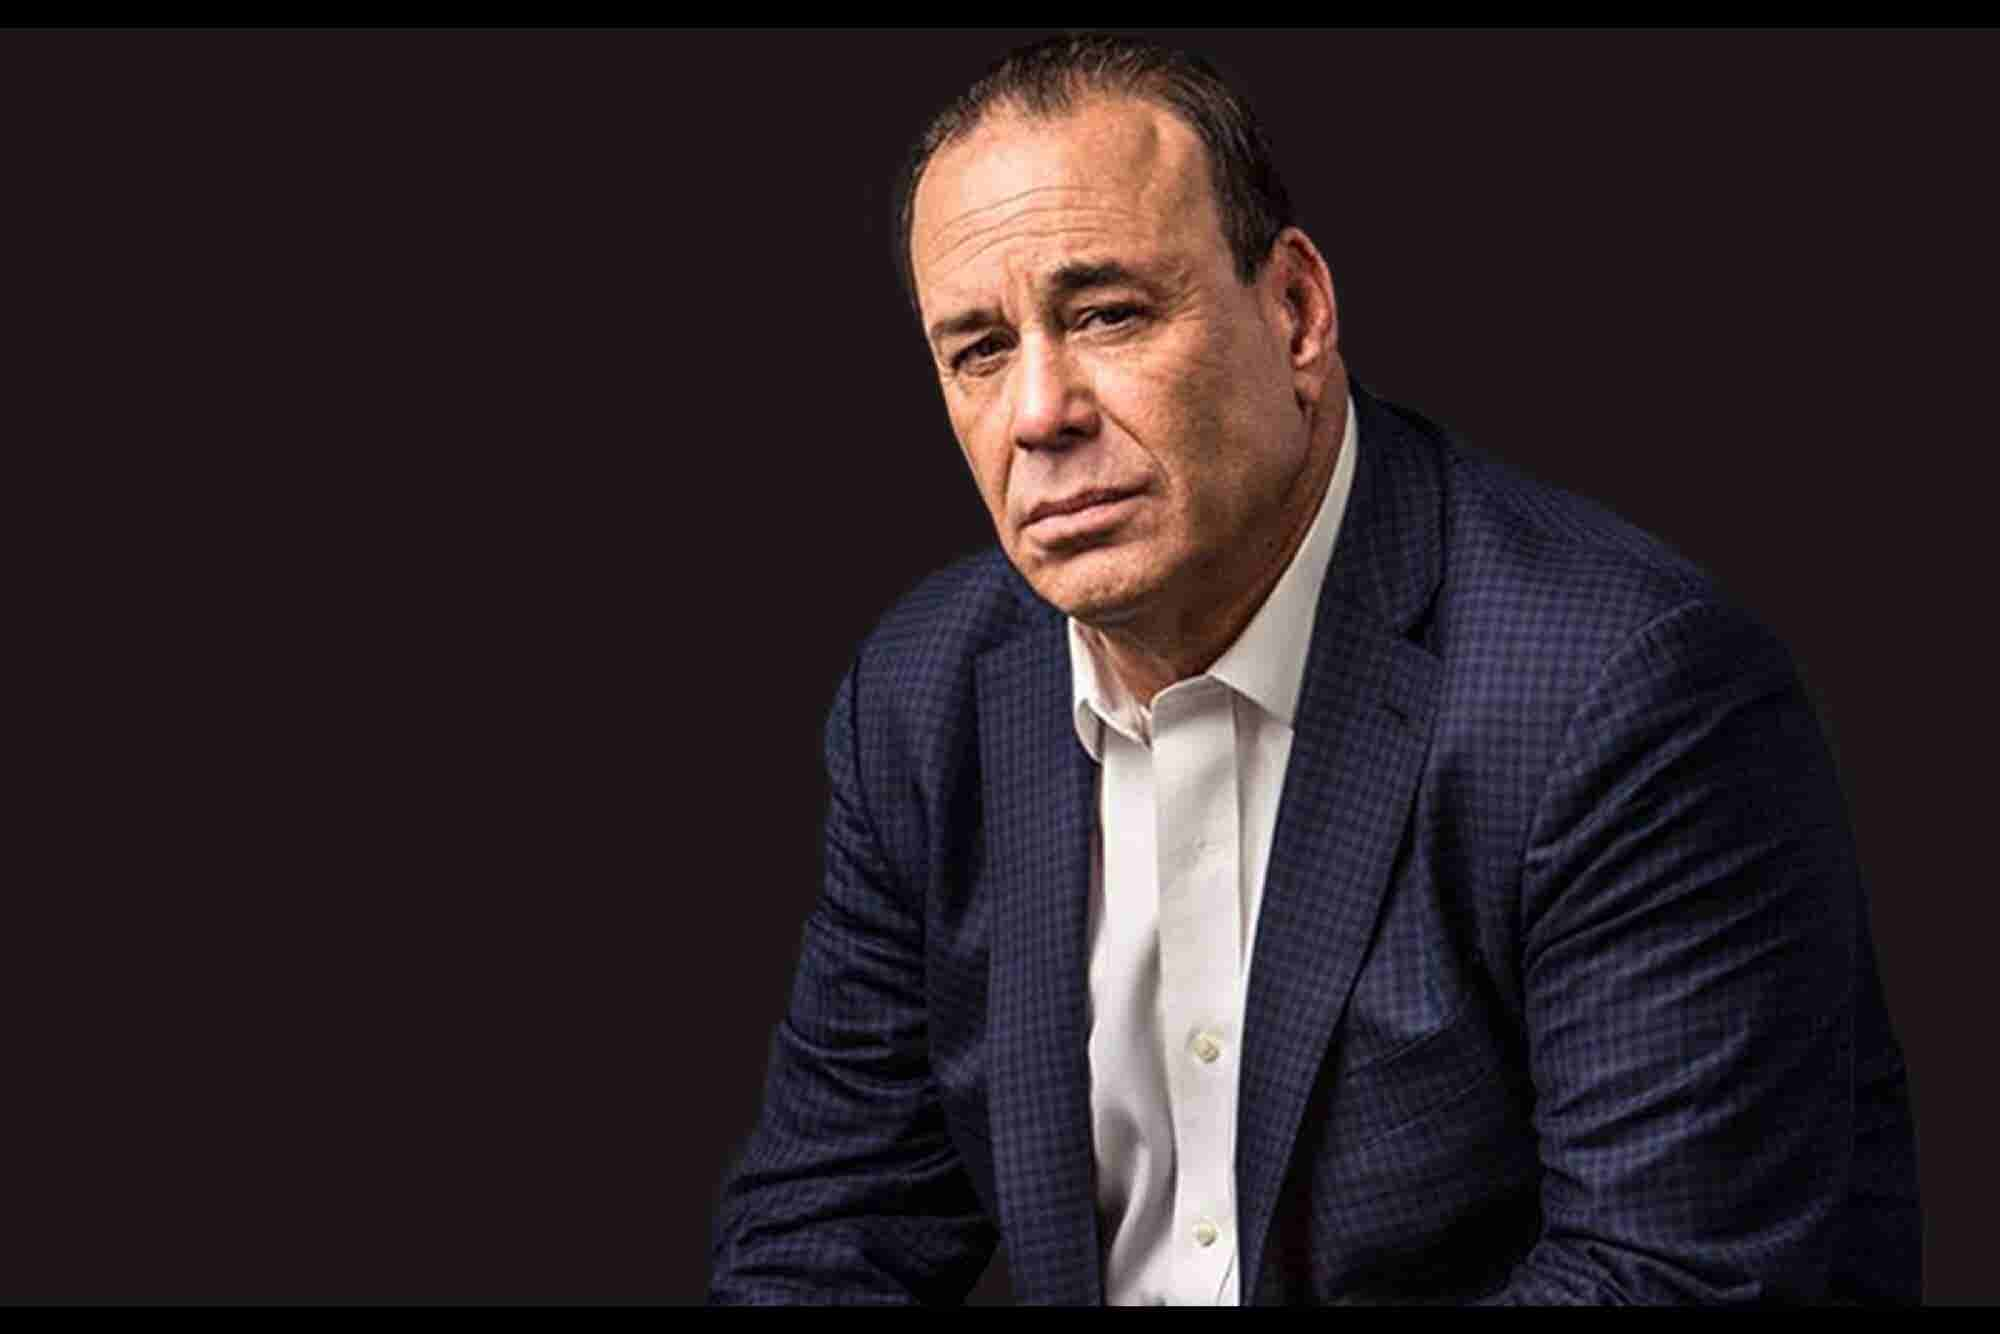 Bar Rescue's Jon Taffer: This One Thing Makes a Great Leader